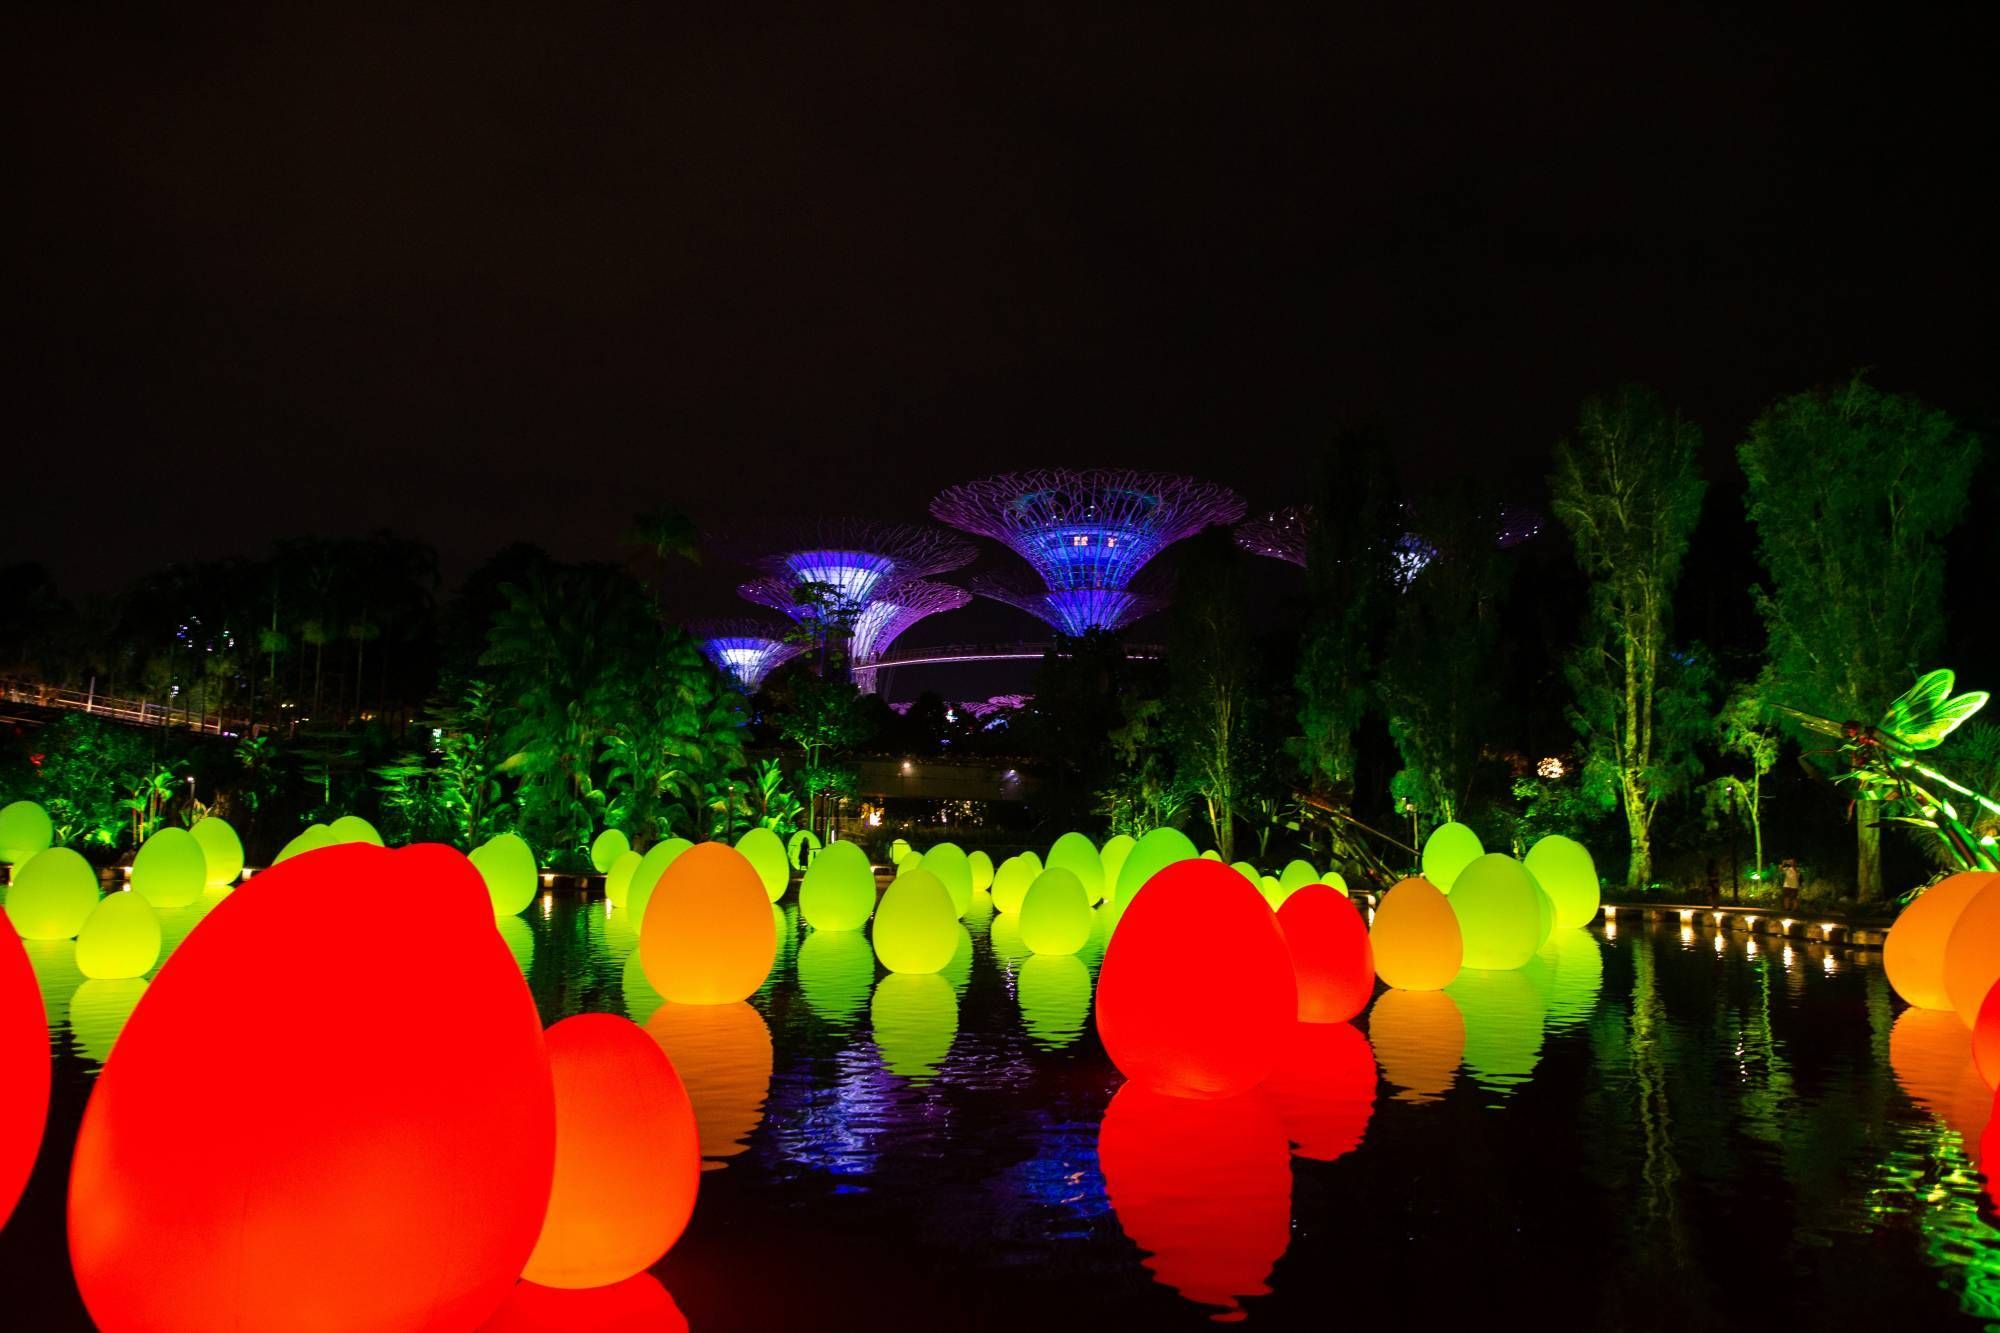 See a Colourful Exhibition at Gardens By The Bay or Catch Kebaya Homies at The Esplanade This Week